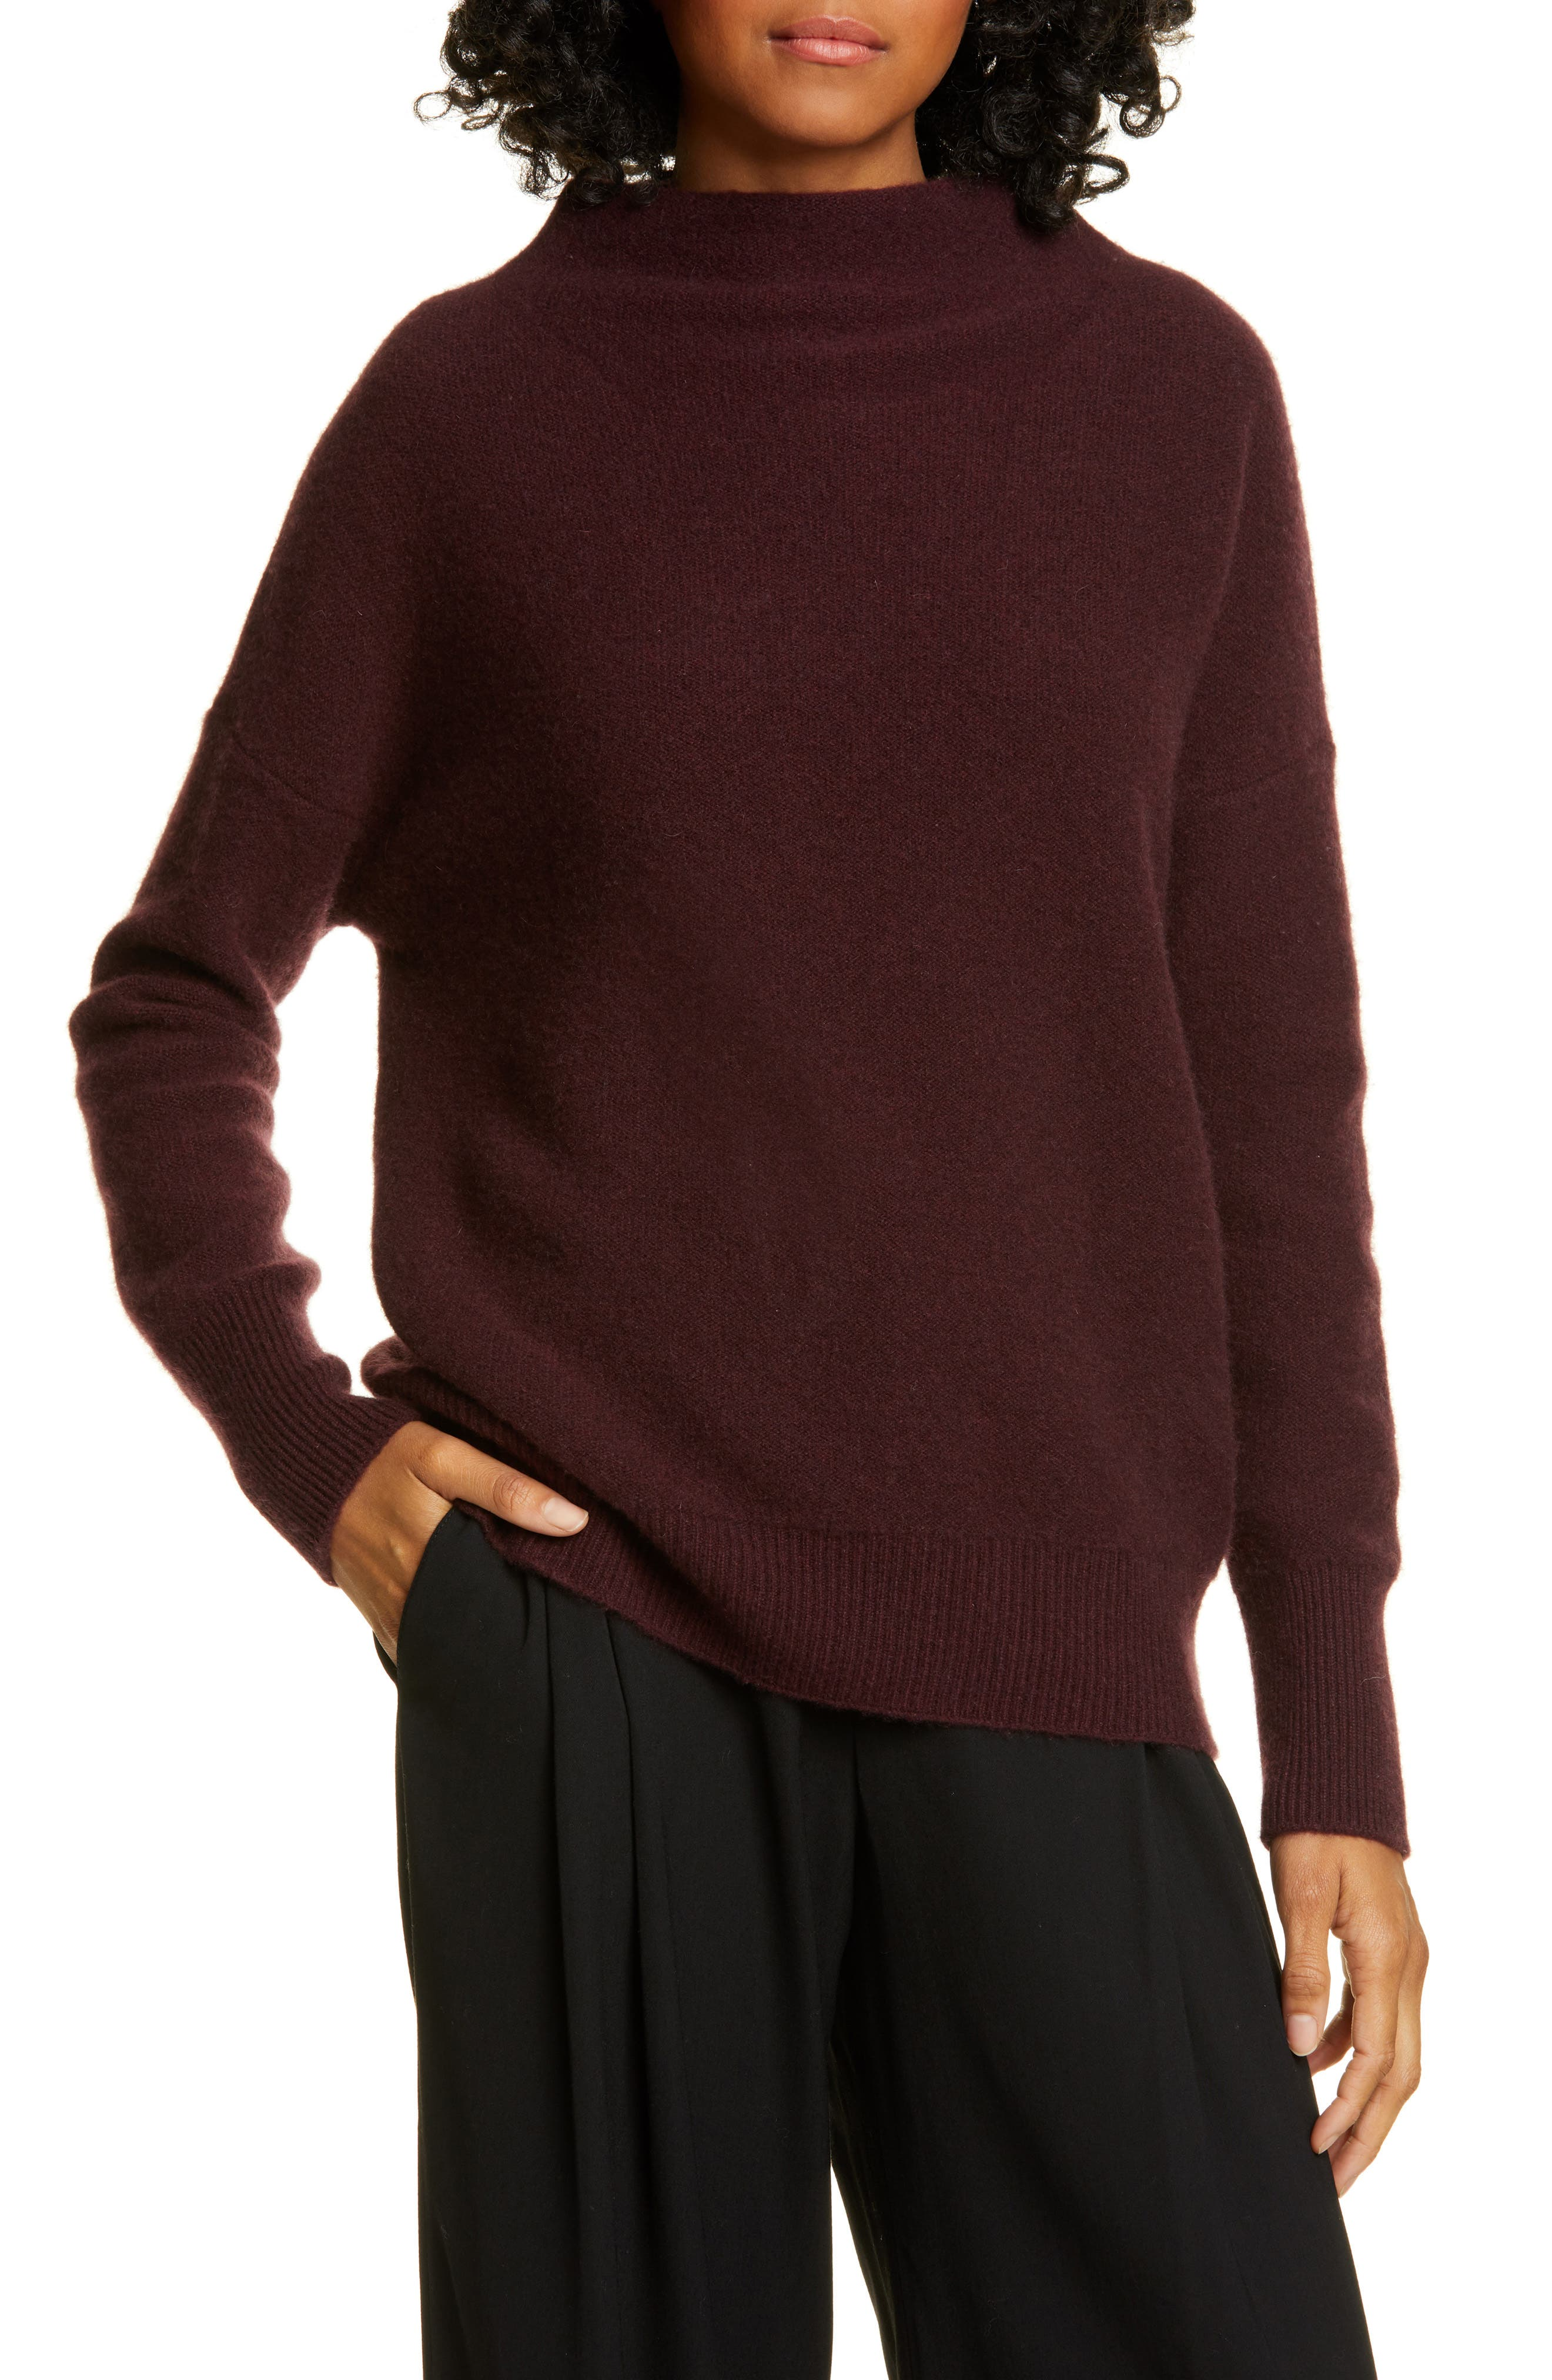 Women's SweatersNordstrom Cashmere SweatersNordstrom Women's SweatersNordstrom Women's Cashmere Cashmere Women's SweatersNordstrom Cashmere Cashmere Women's SweatersNordstrom dxorCeWB